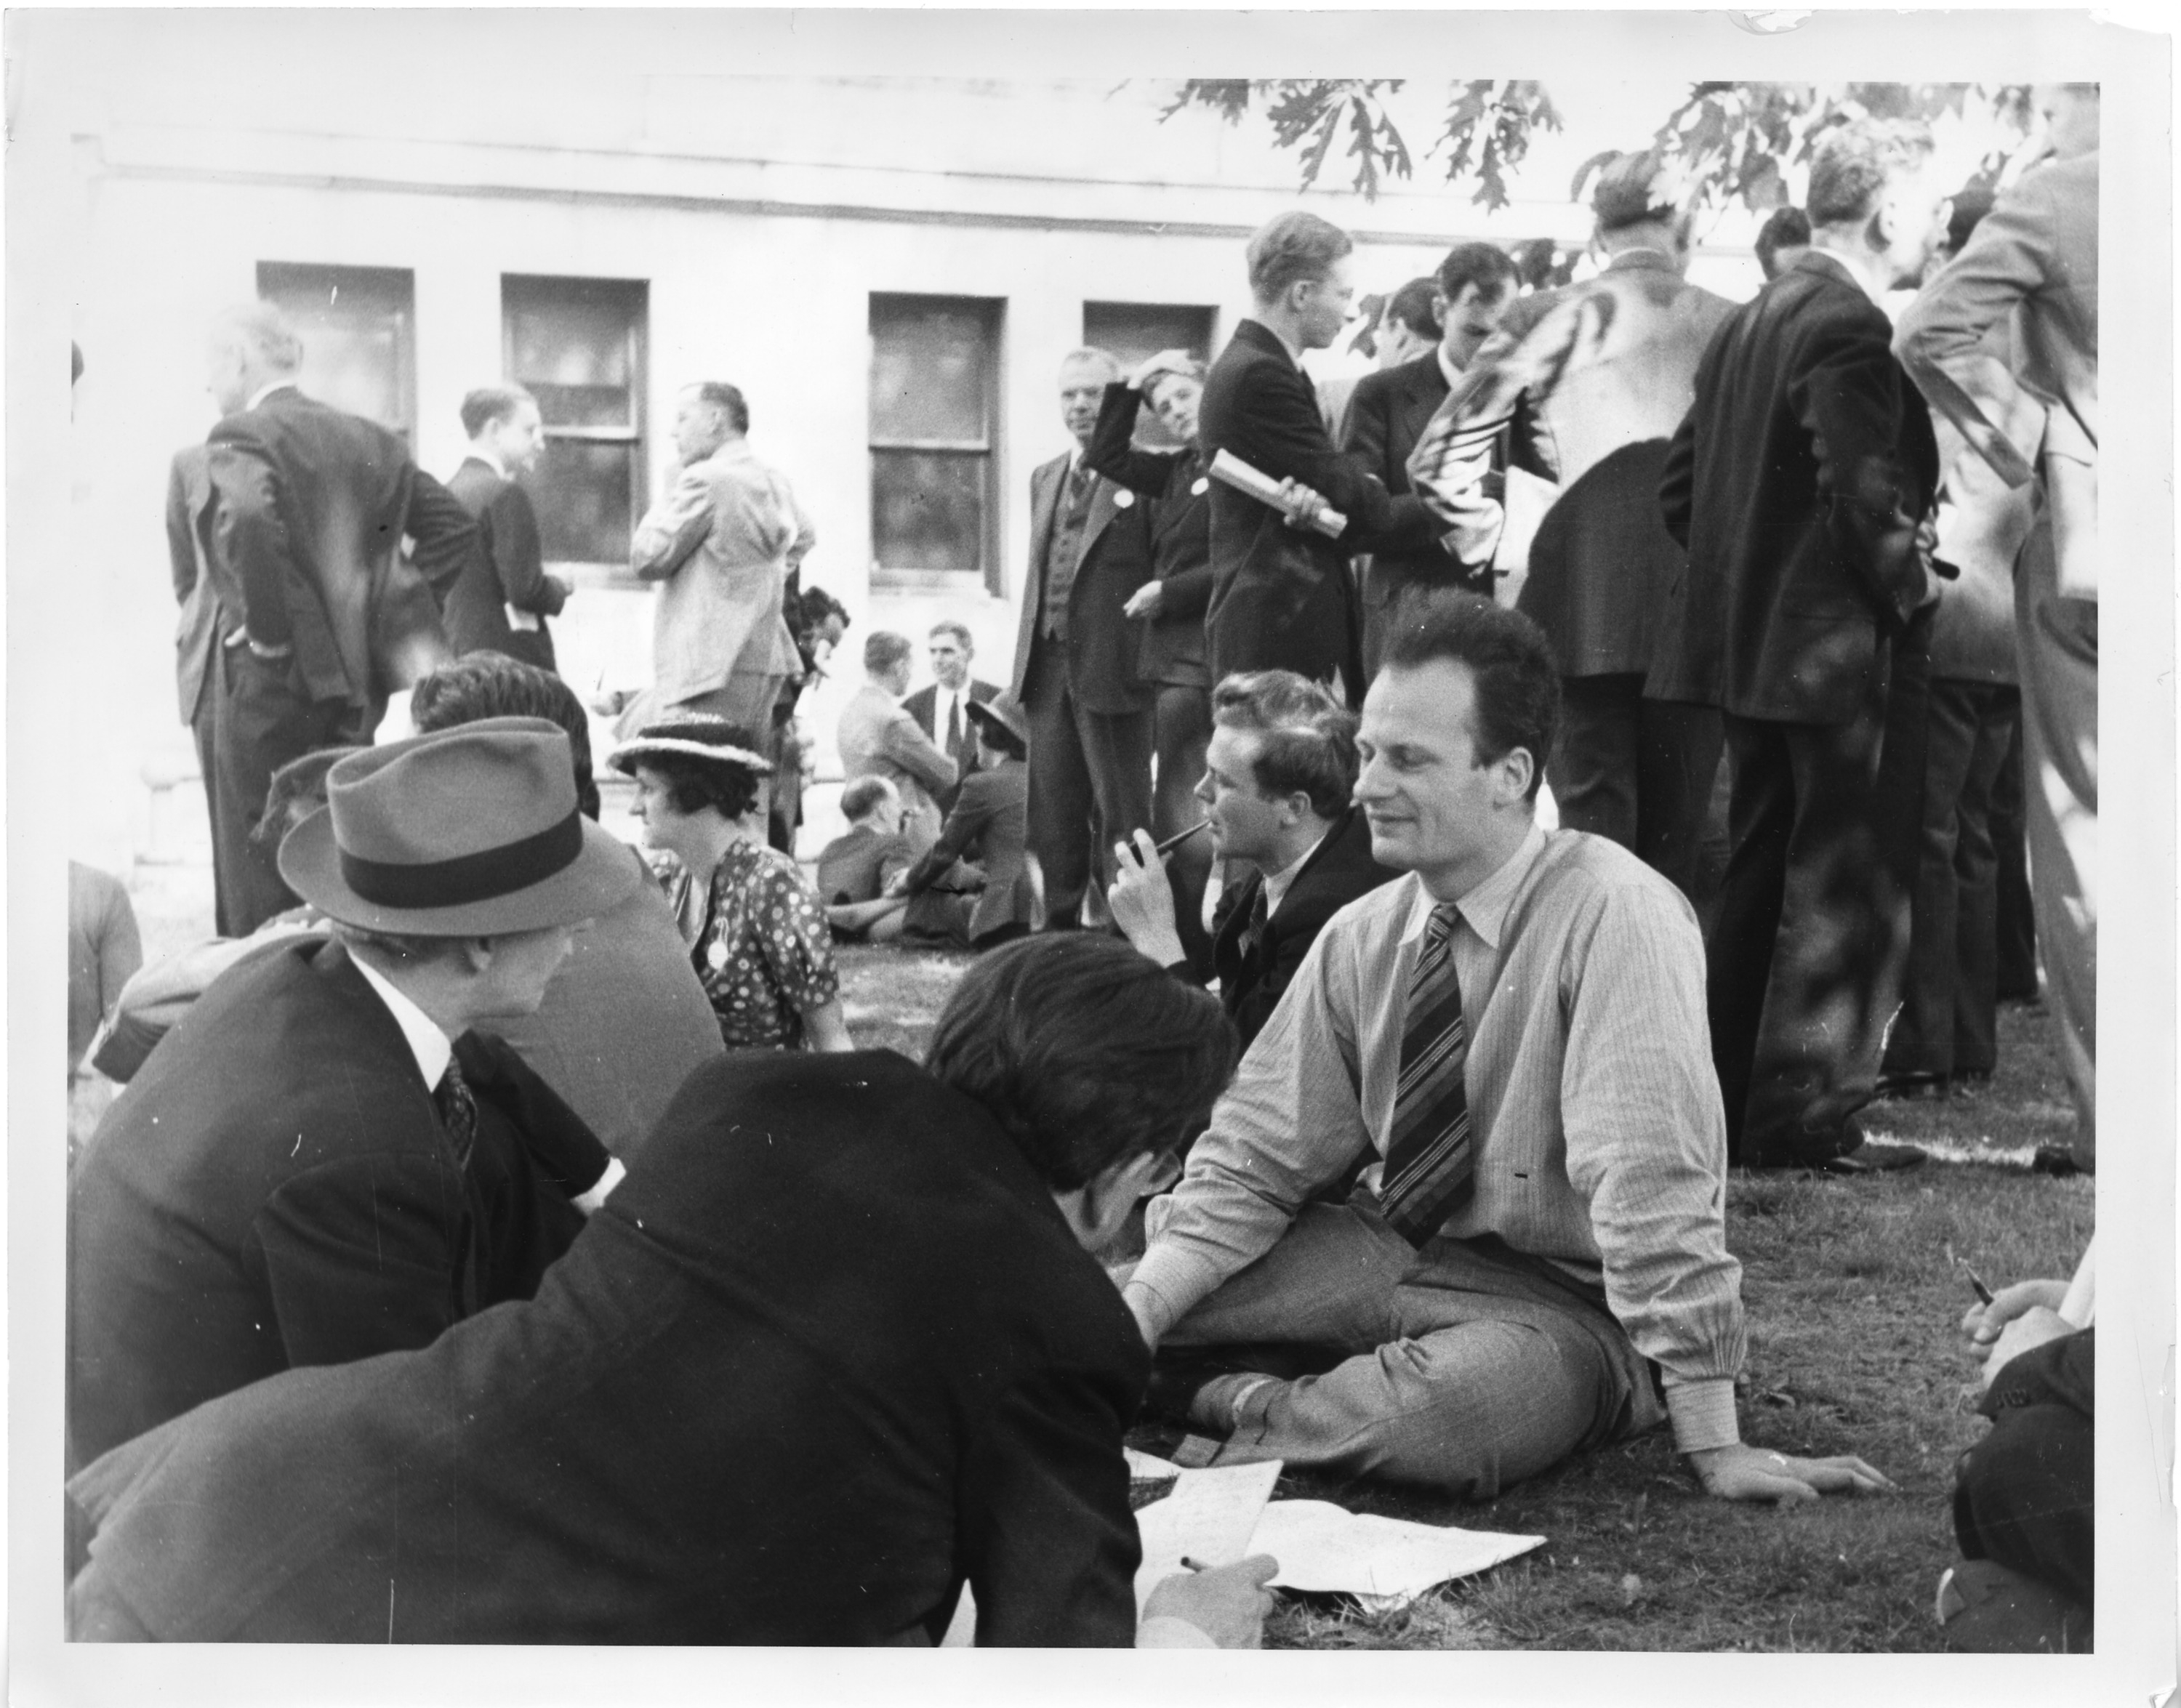 Men and women sit and stand on a lawn outdoors. All are wearing suits or dresses. Three men closest